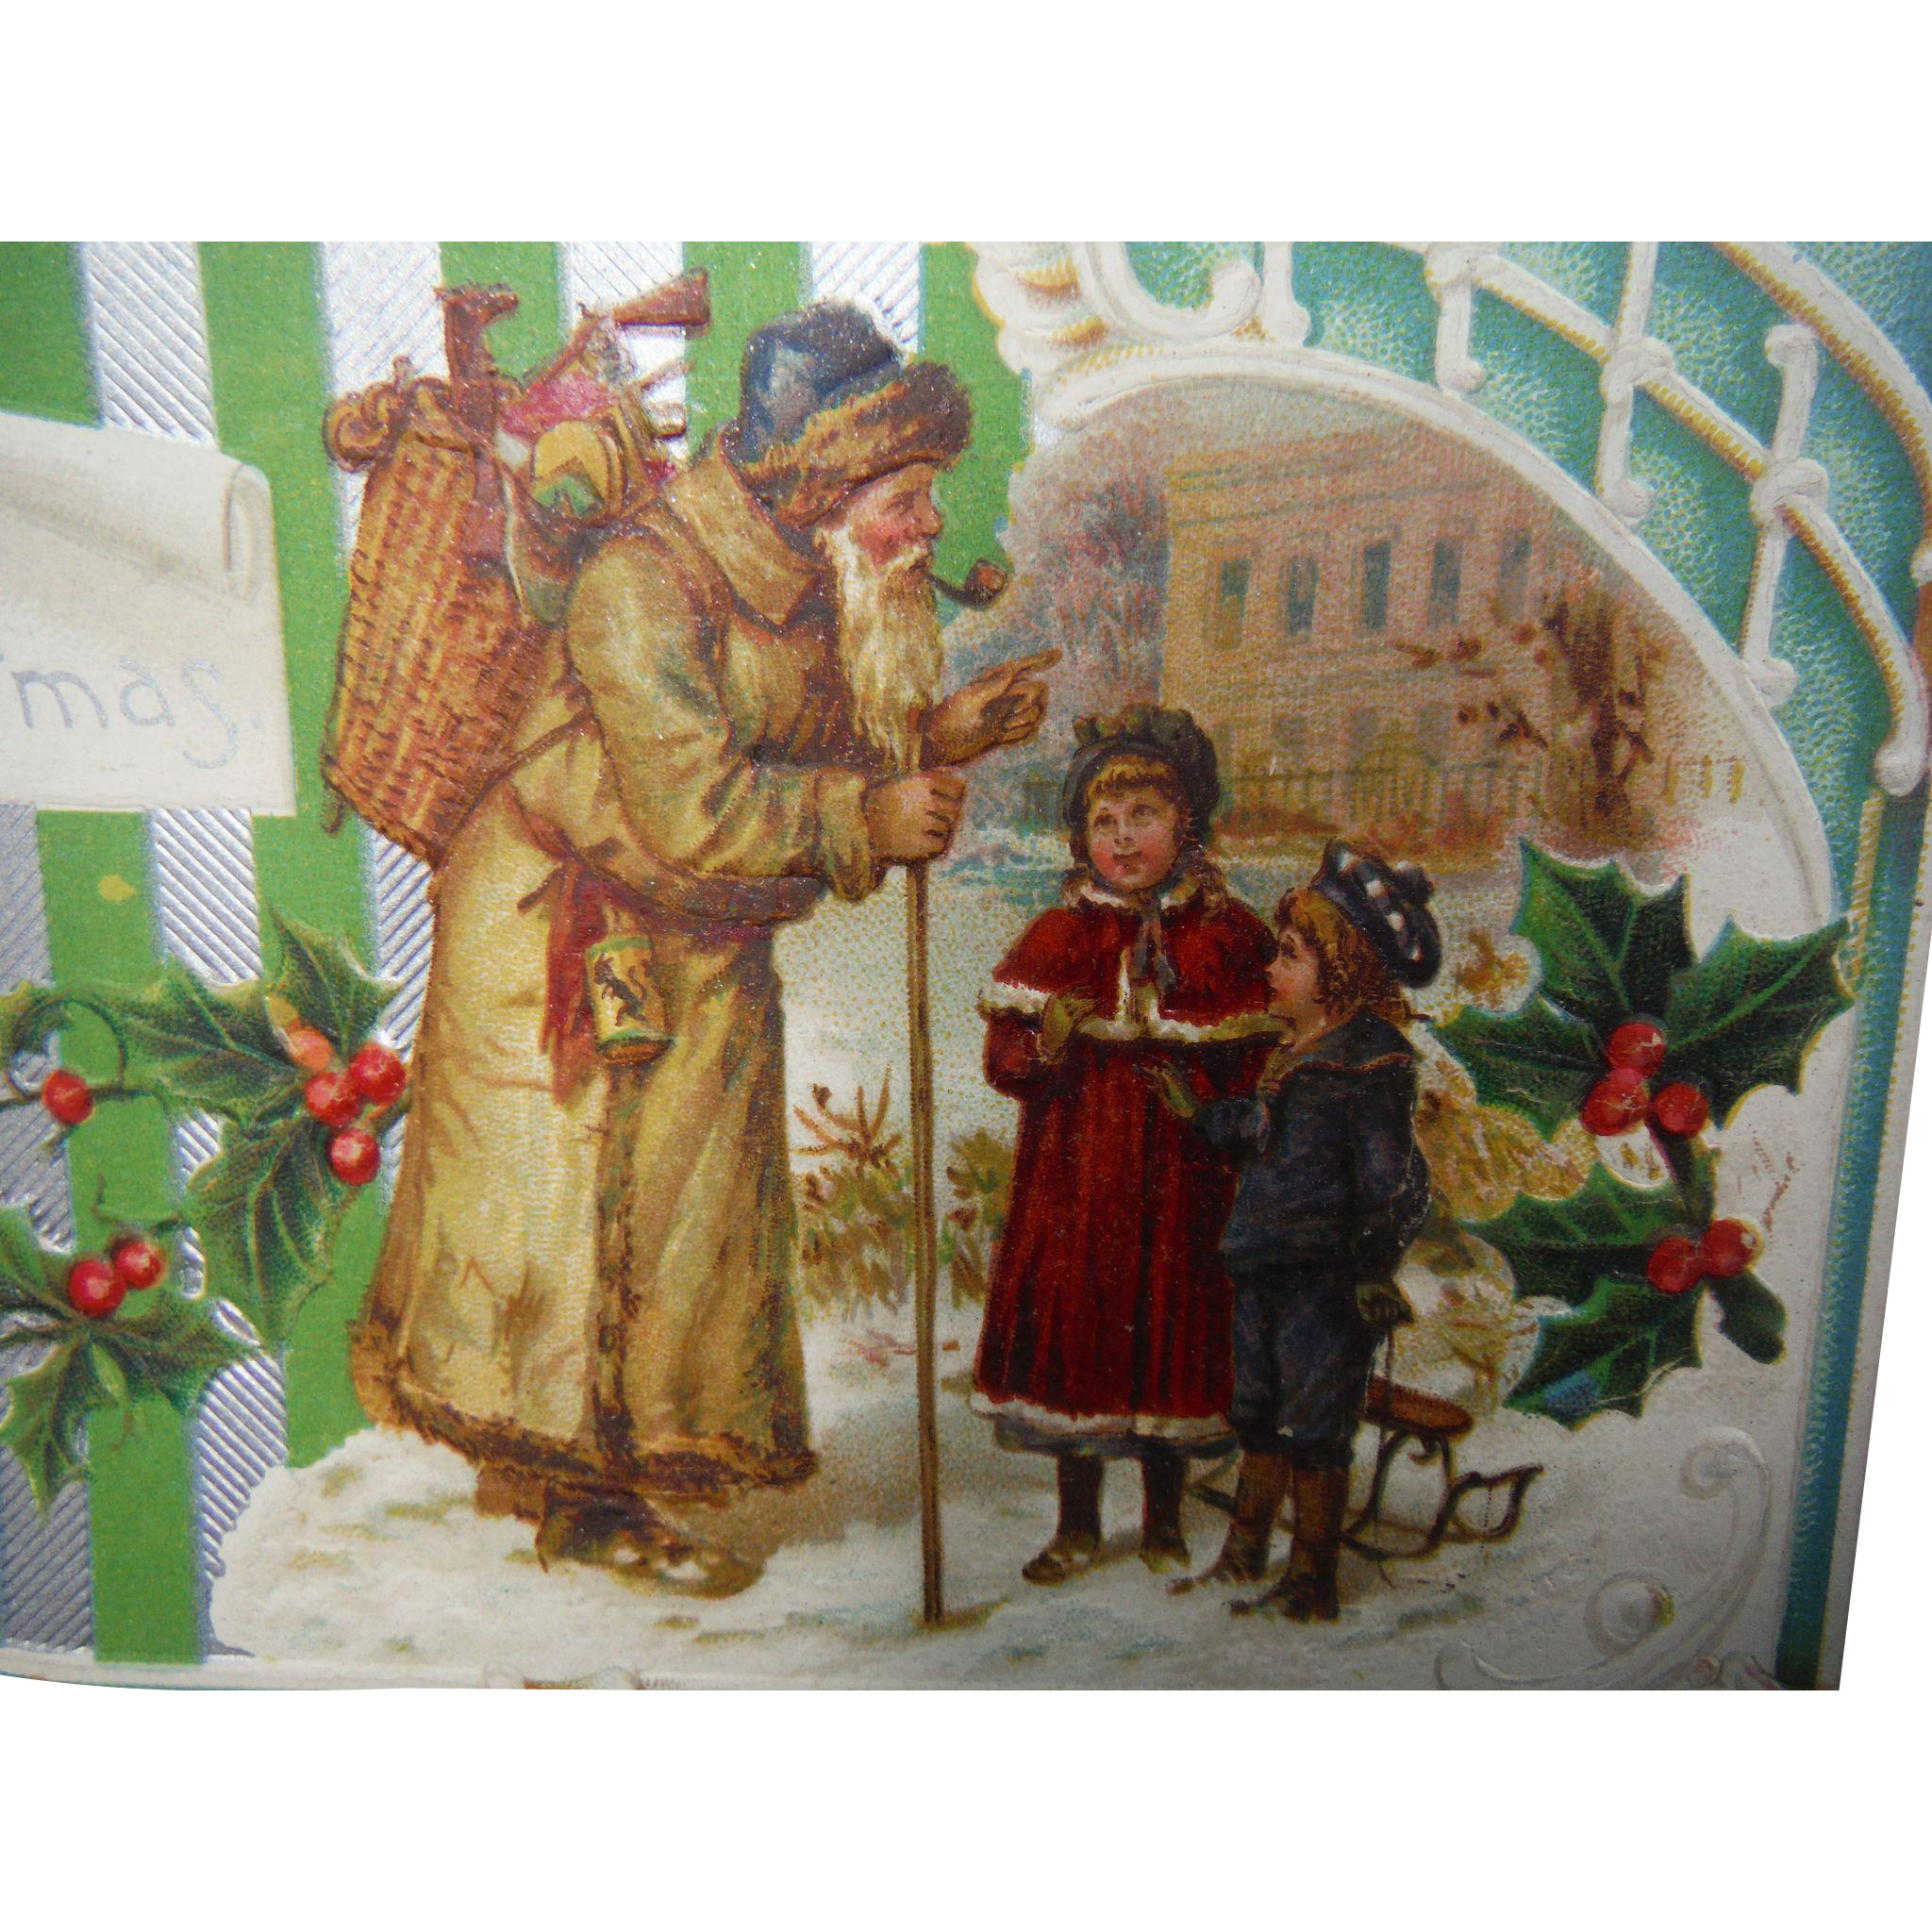 Antique Old World Santa Claus Germany Edwardian Christmas Post Card Saint Nicholas with Children Embossed 1910